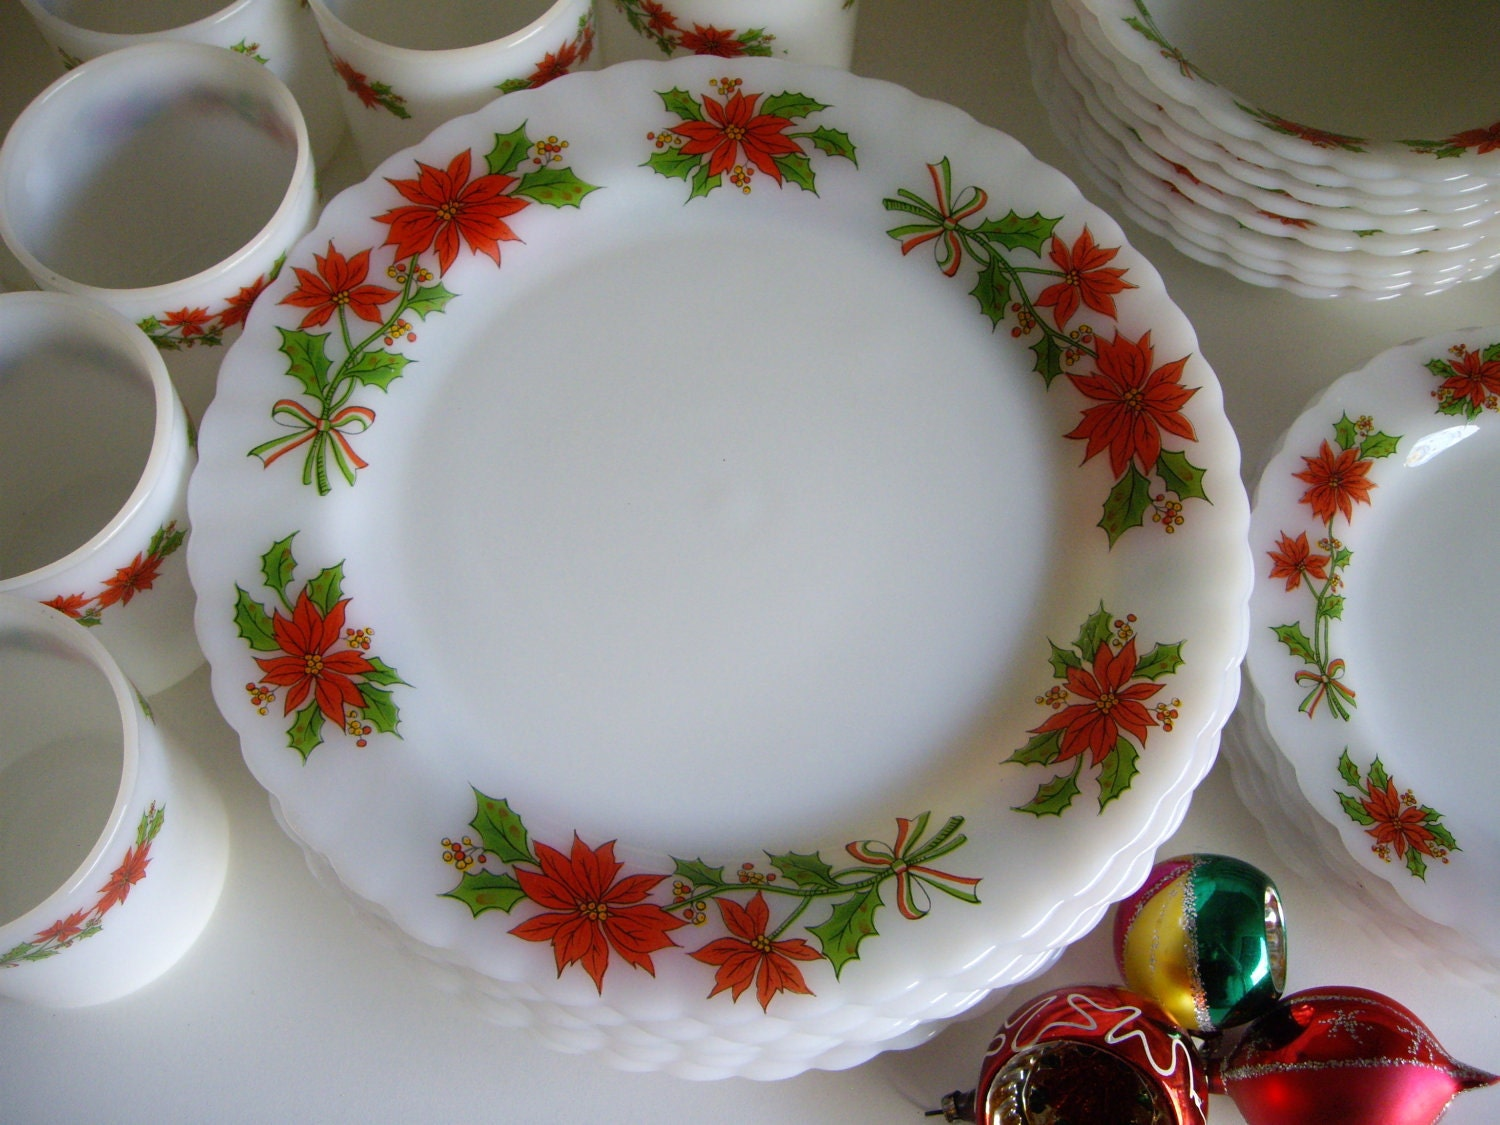 Christmas Dishes Lookup Beforebuying & Holiday Dinnerware Clearance - Castrophotos